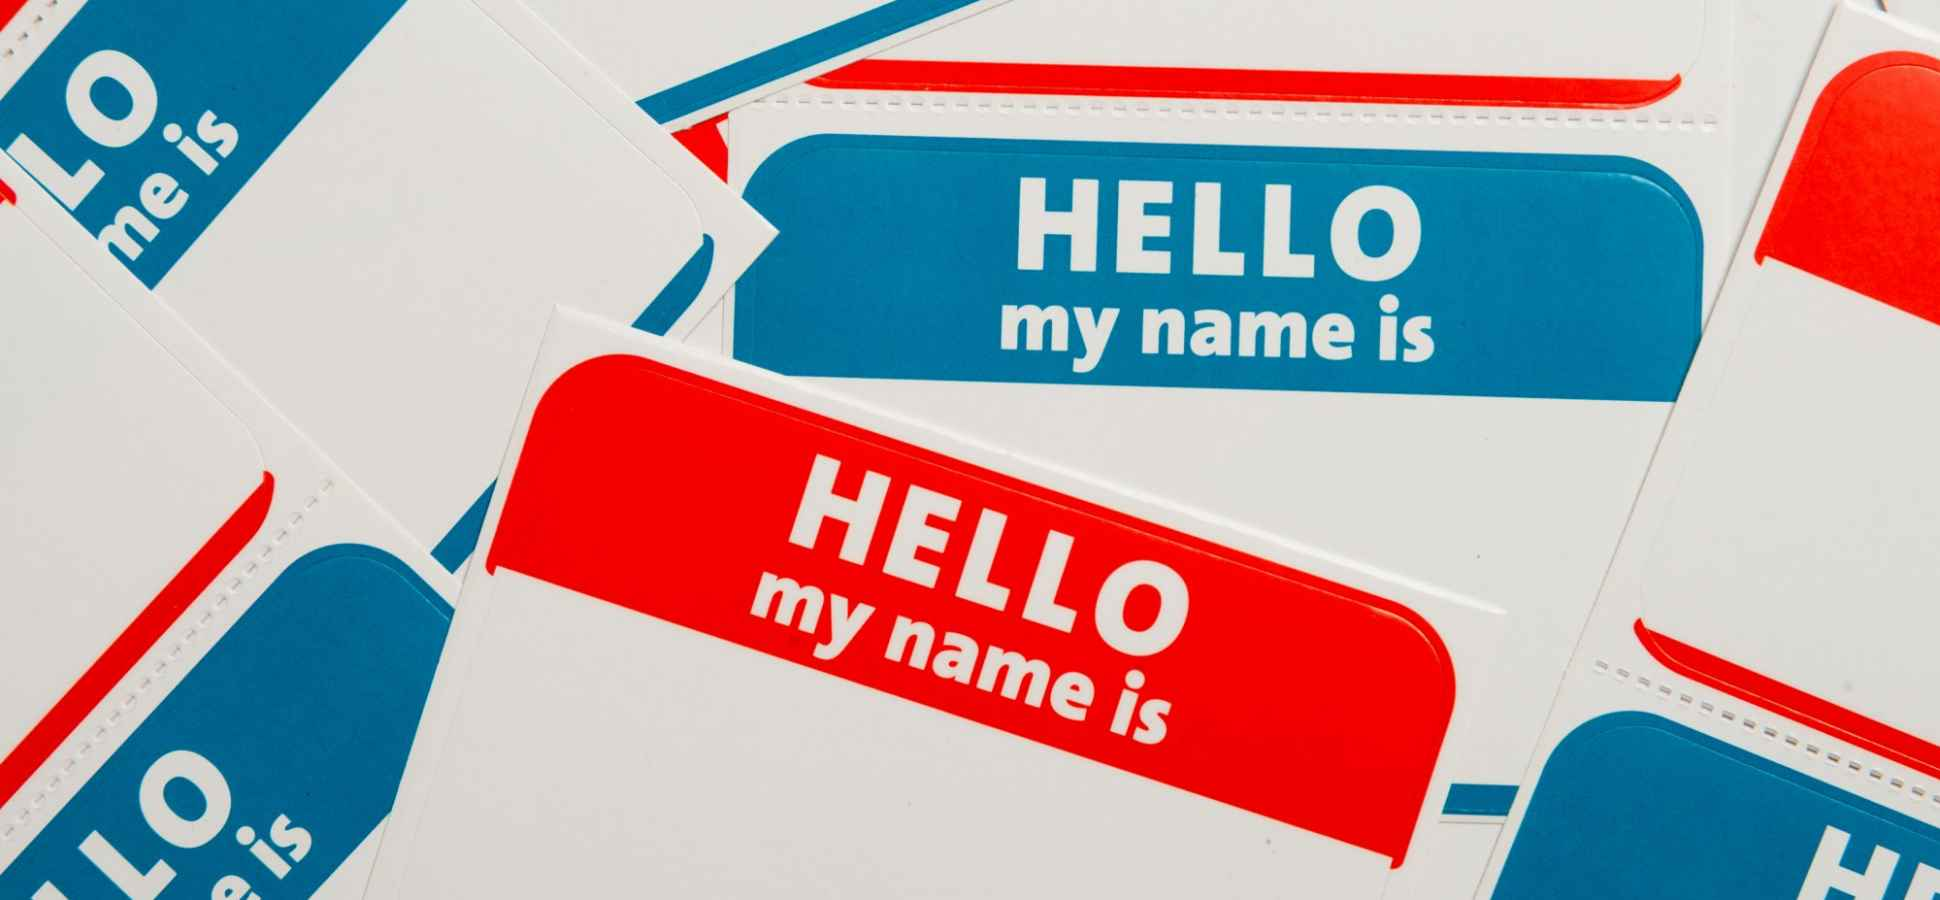 5 Pitfalls to Avoid in Naming Your Business